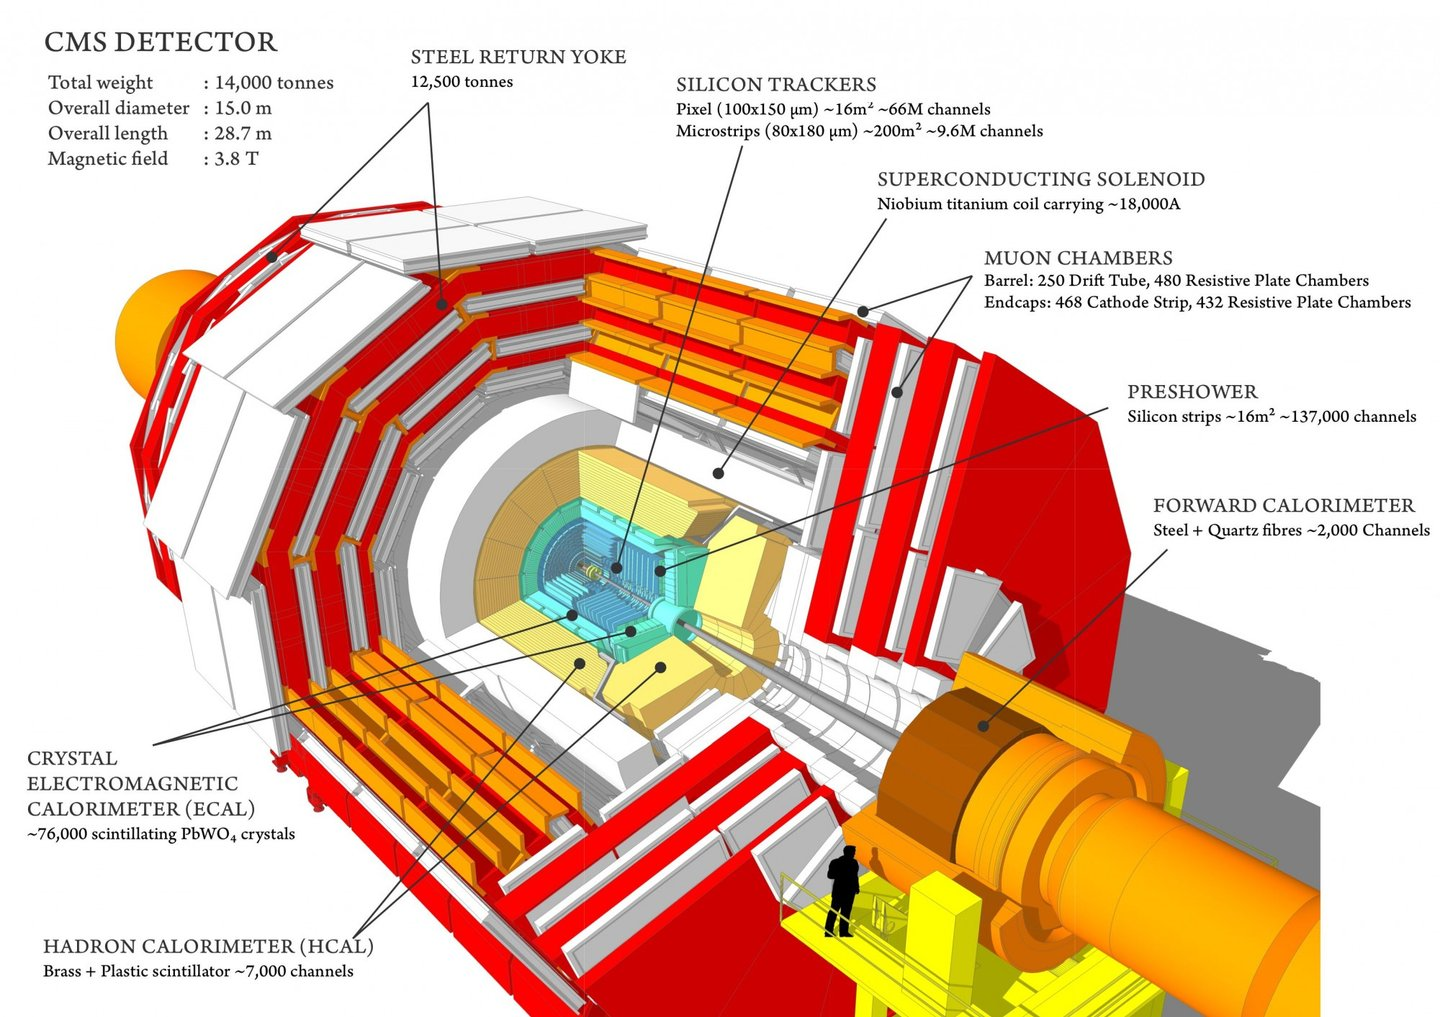 Sectional view of the CMS detector. The LHC beams travel in opposite directions along the central axis of the CMS cylinder colliding in the middle of the CMS detector.